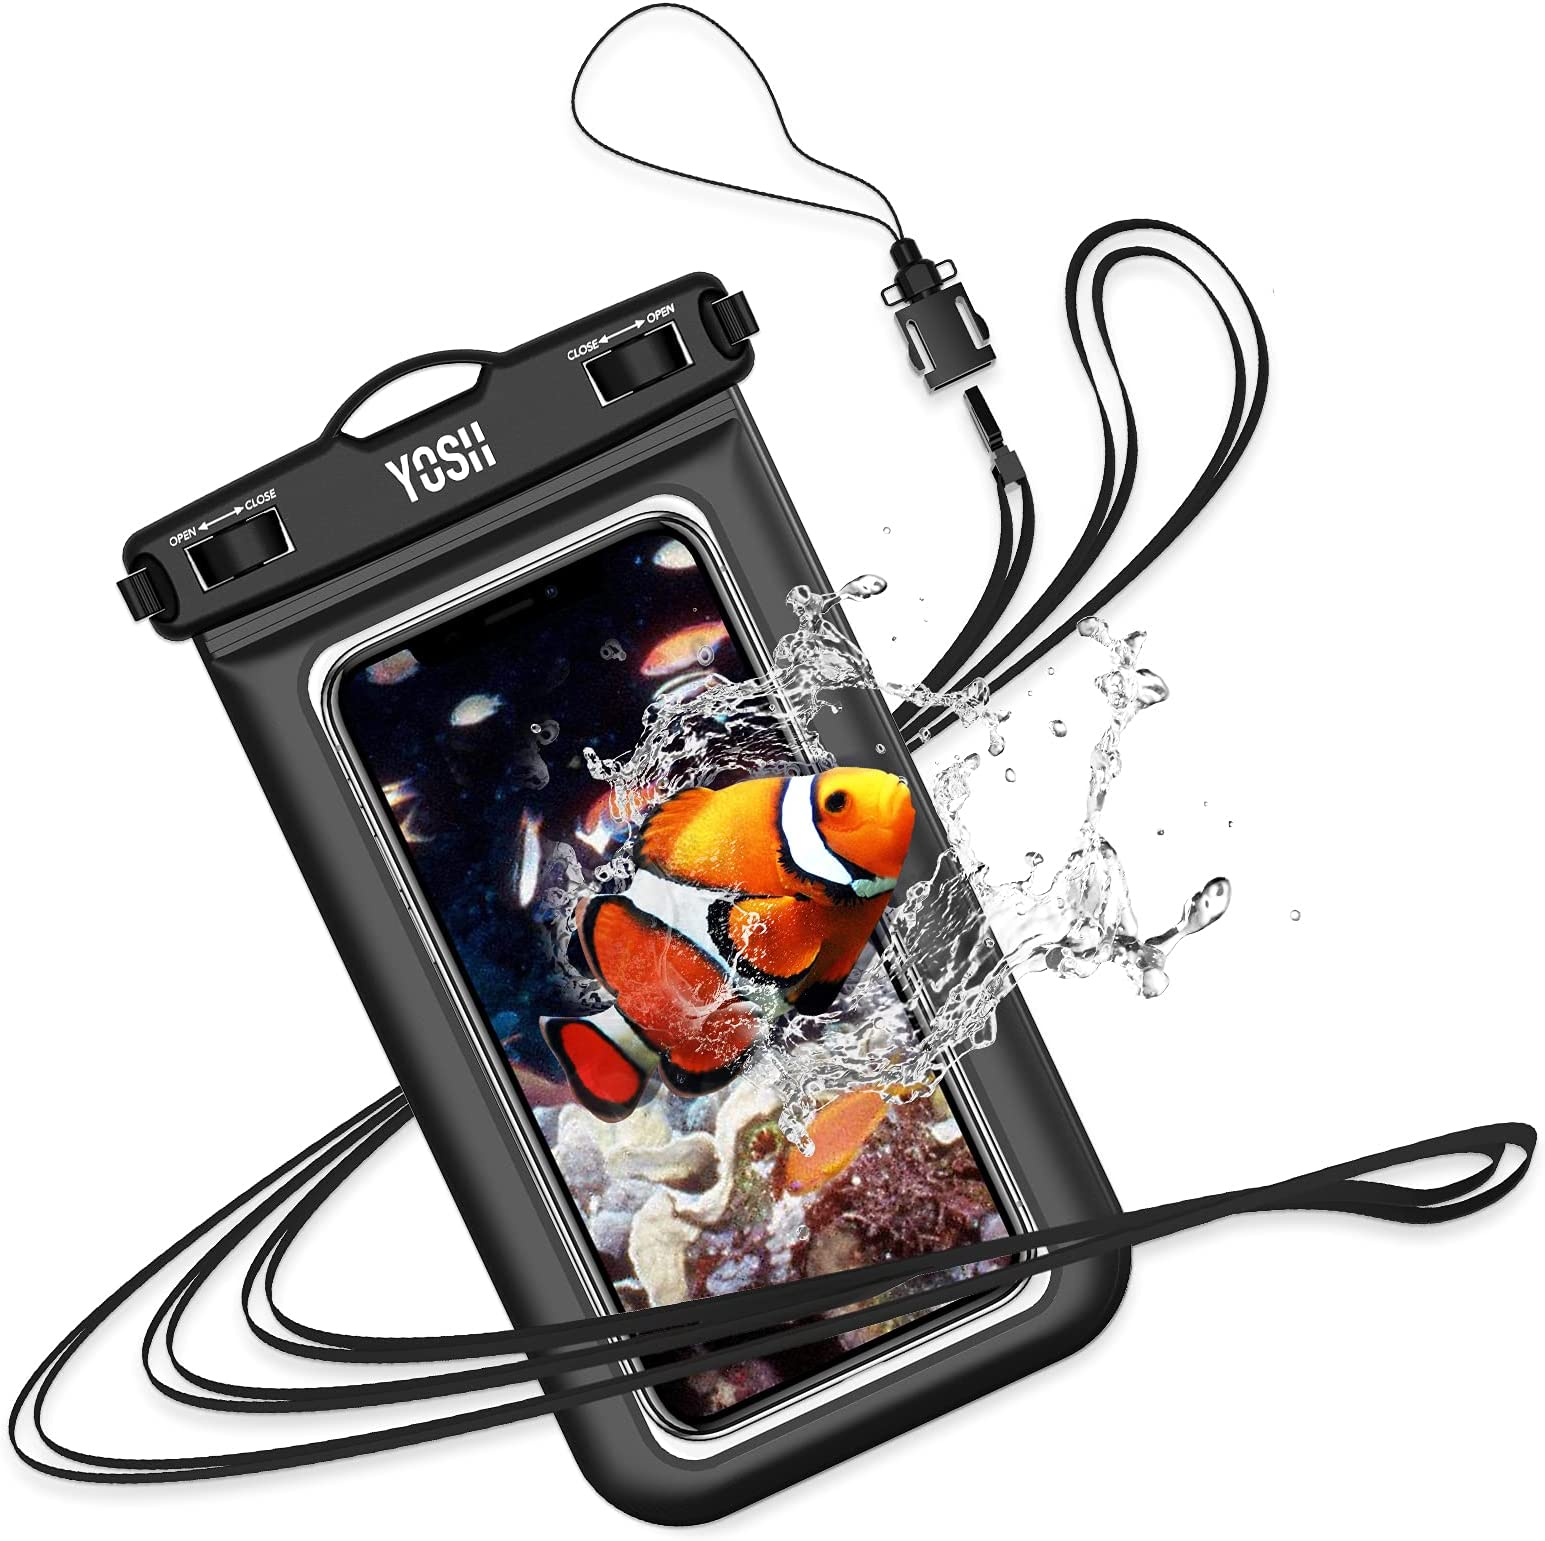 """YOSH Waterproof Phone Case Universal Waterproof Phone Pouch IPX8 Dry Bag Compatible for iPhone 12 11 SE X 8 7 6 Galaxy S20 Pixel up to 6.8"""", for Beach Kayaking Bath Travel - Black"""